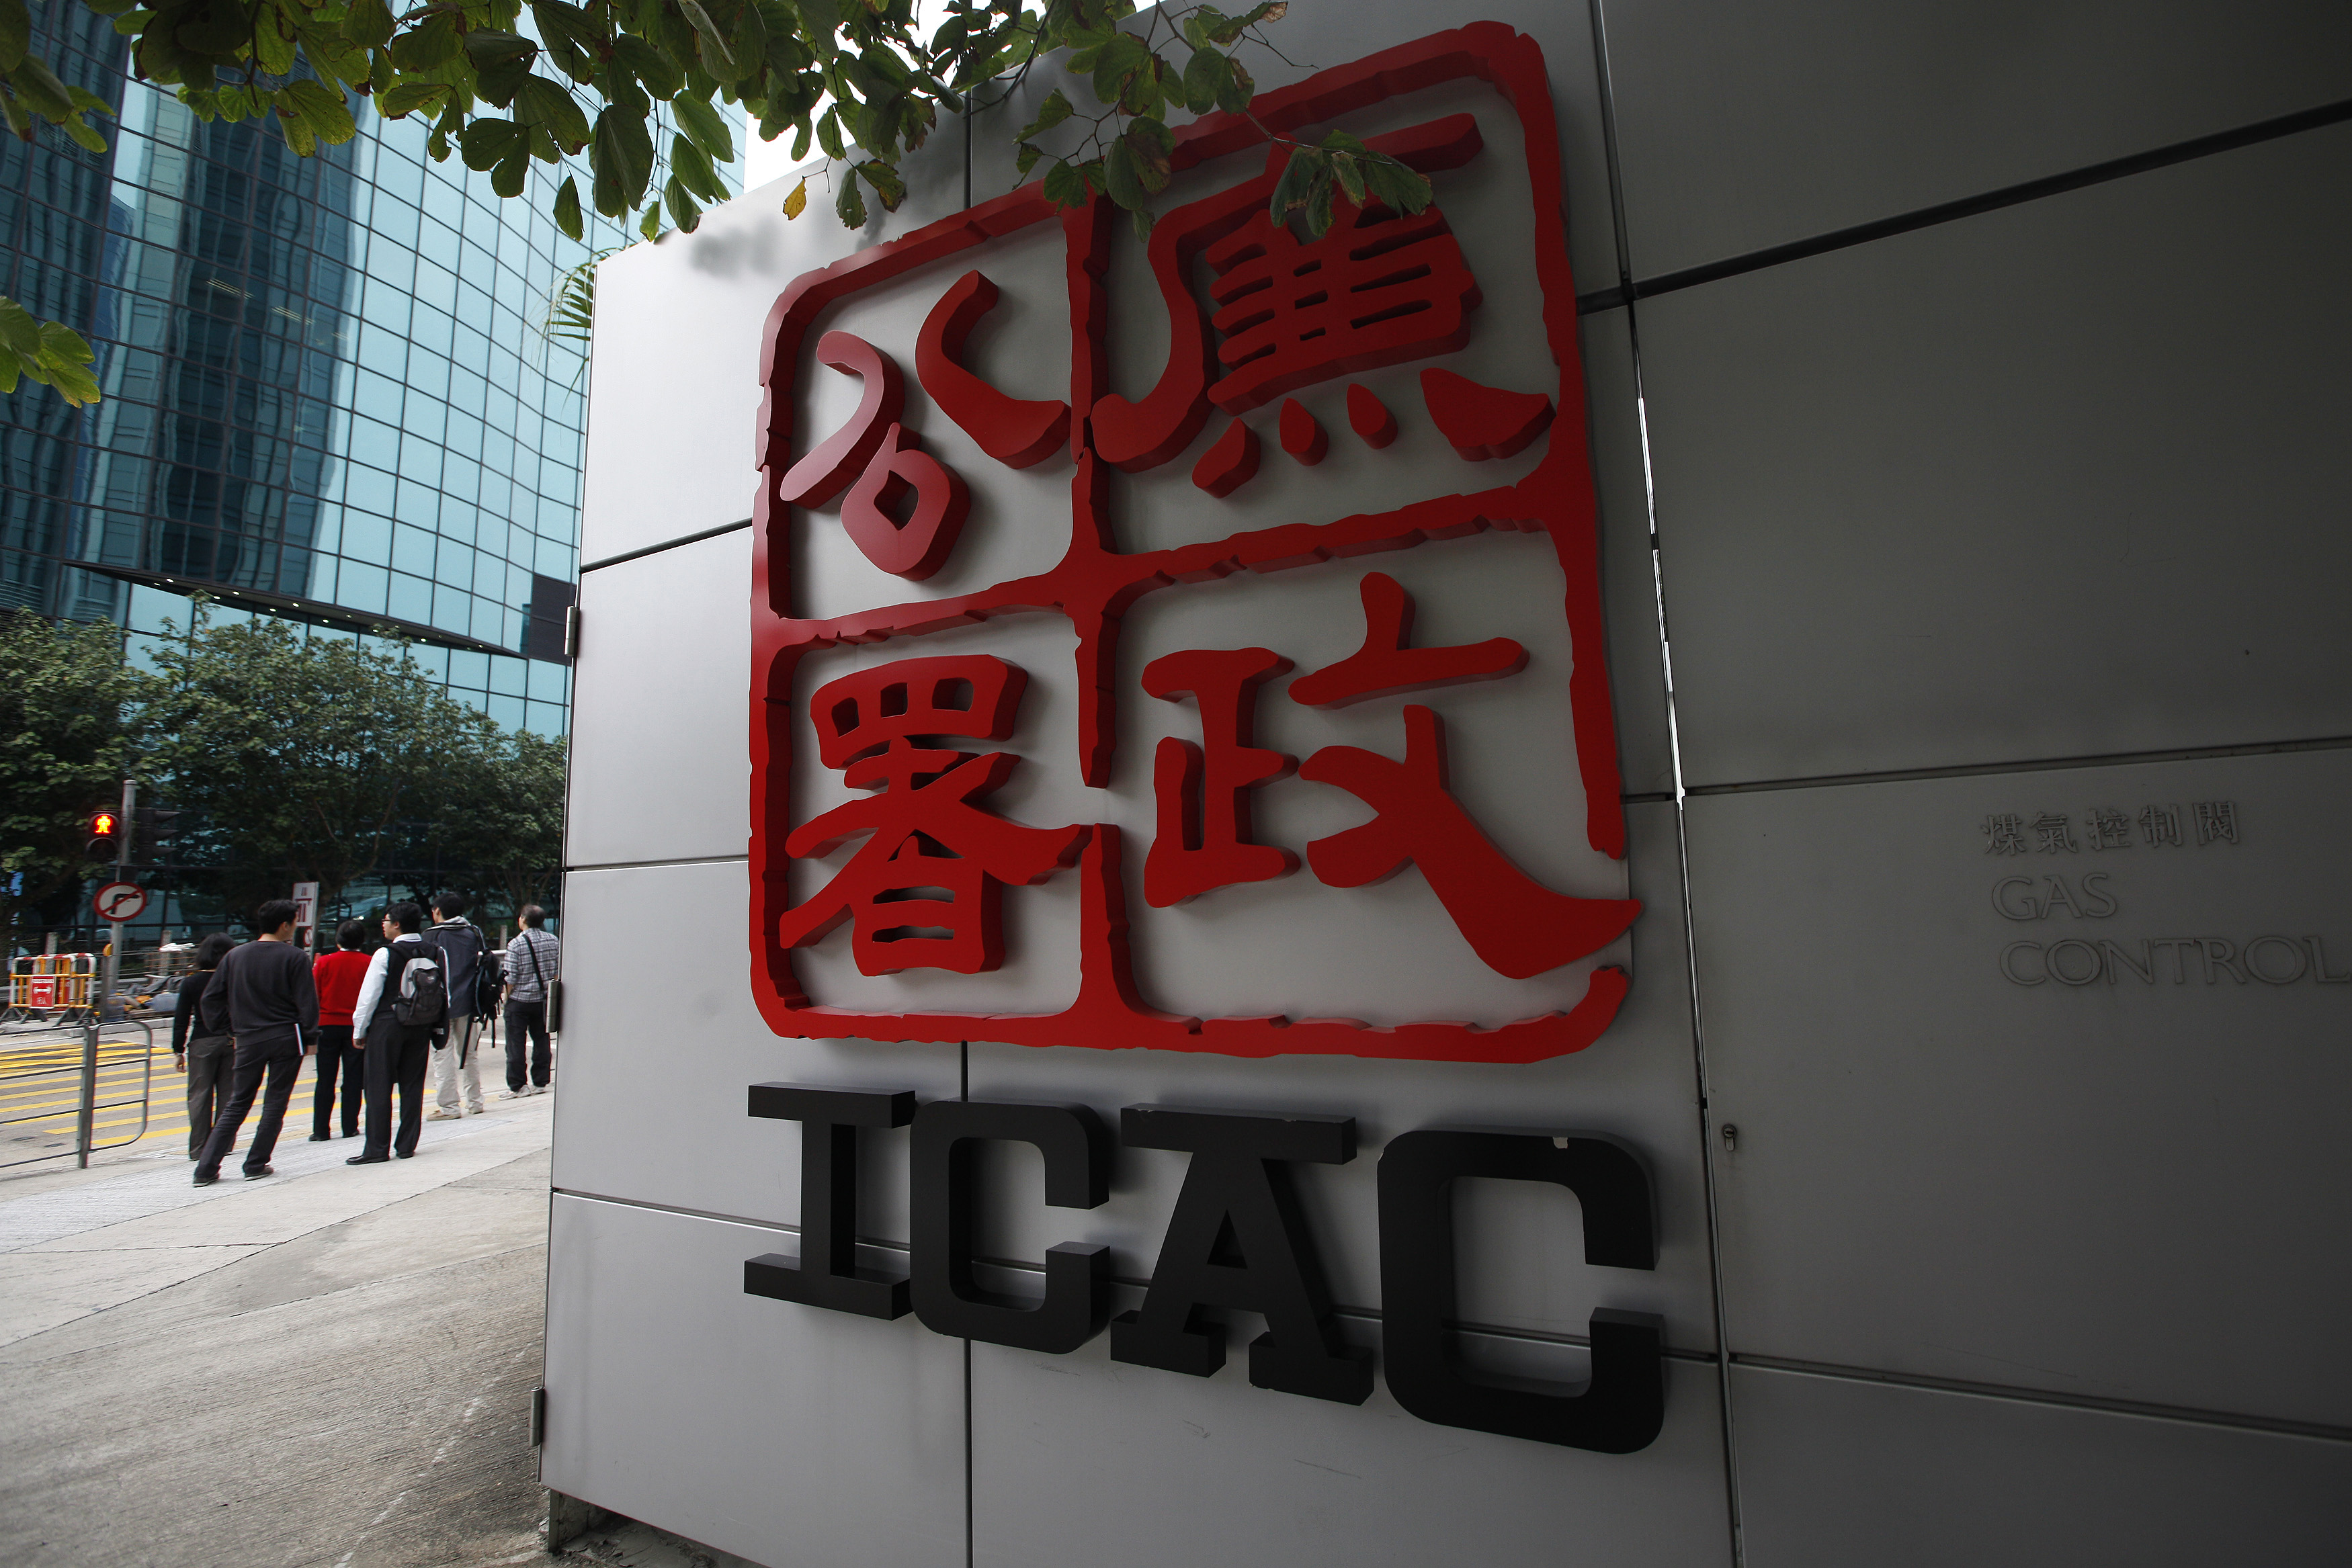 The logo of the Independent Commission Against Corruption (ICAC) is seen outside its headquarters in Hong Kong on March 30, 2012